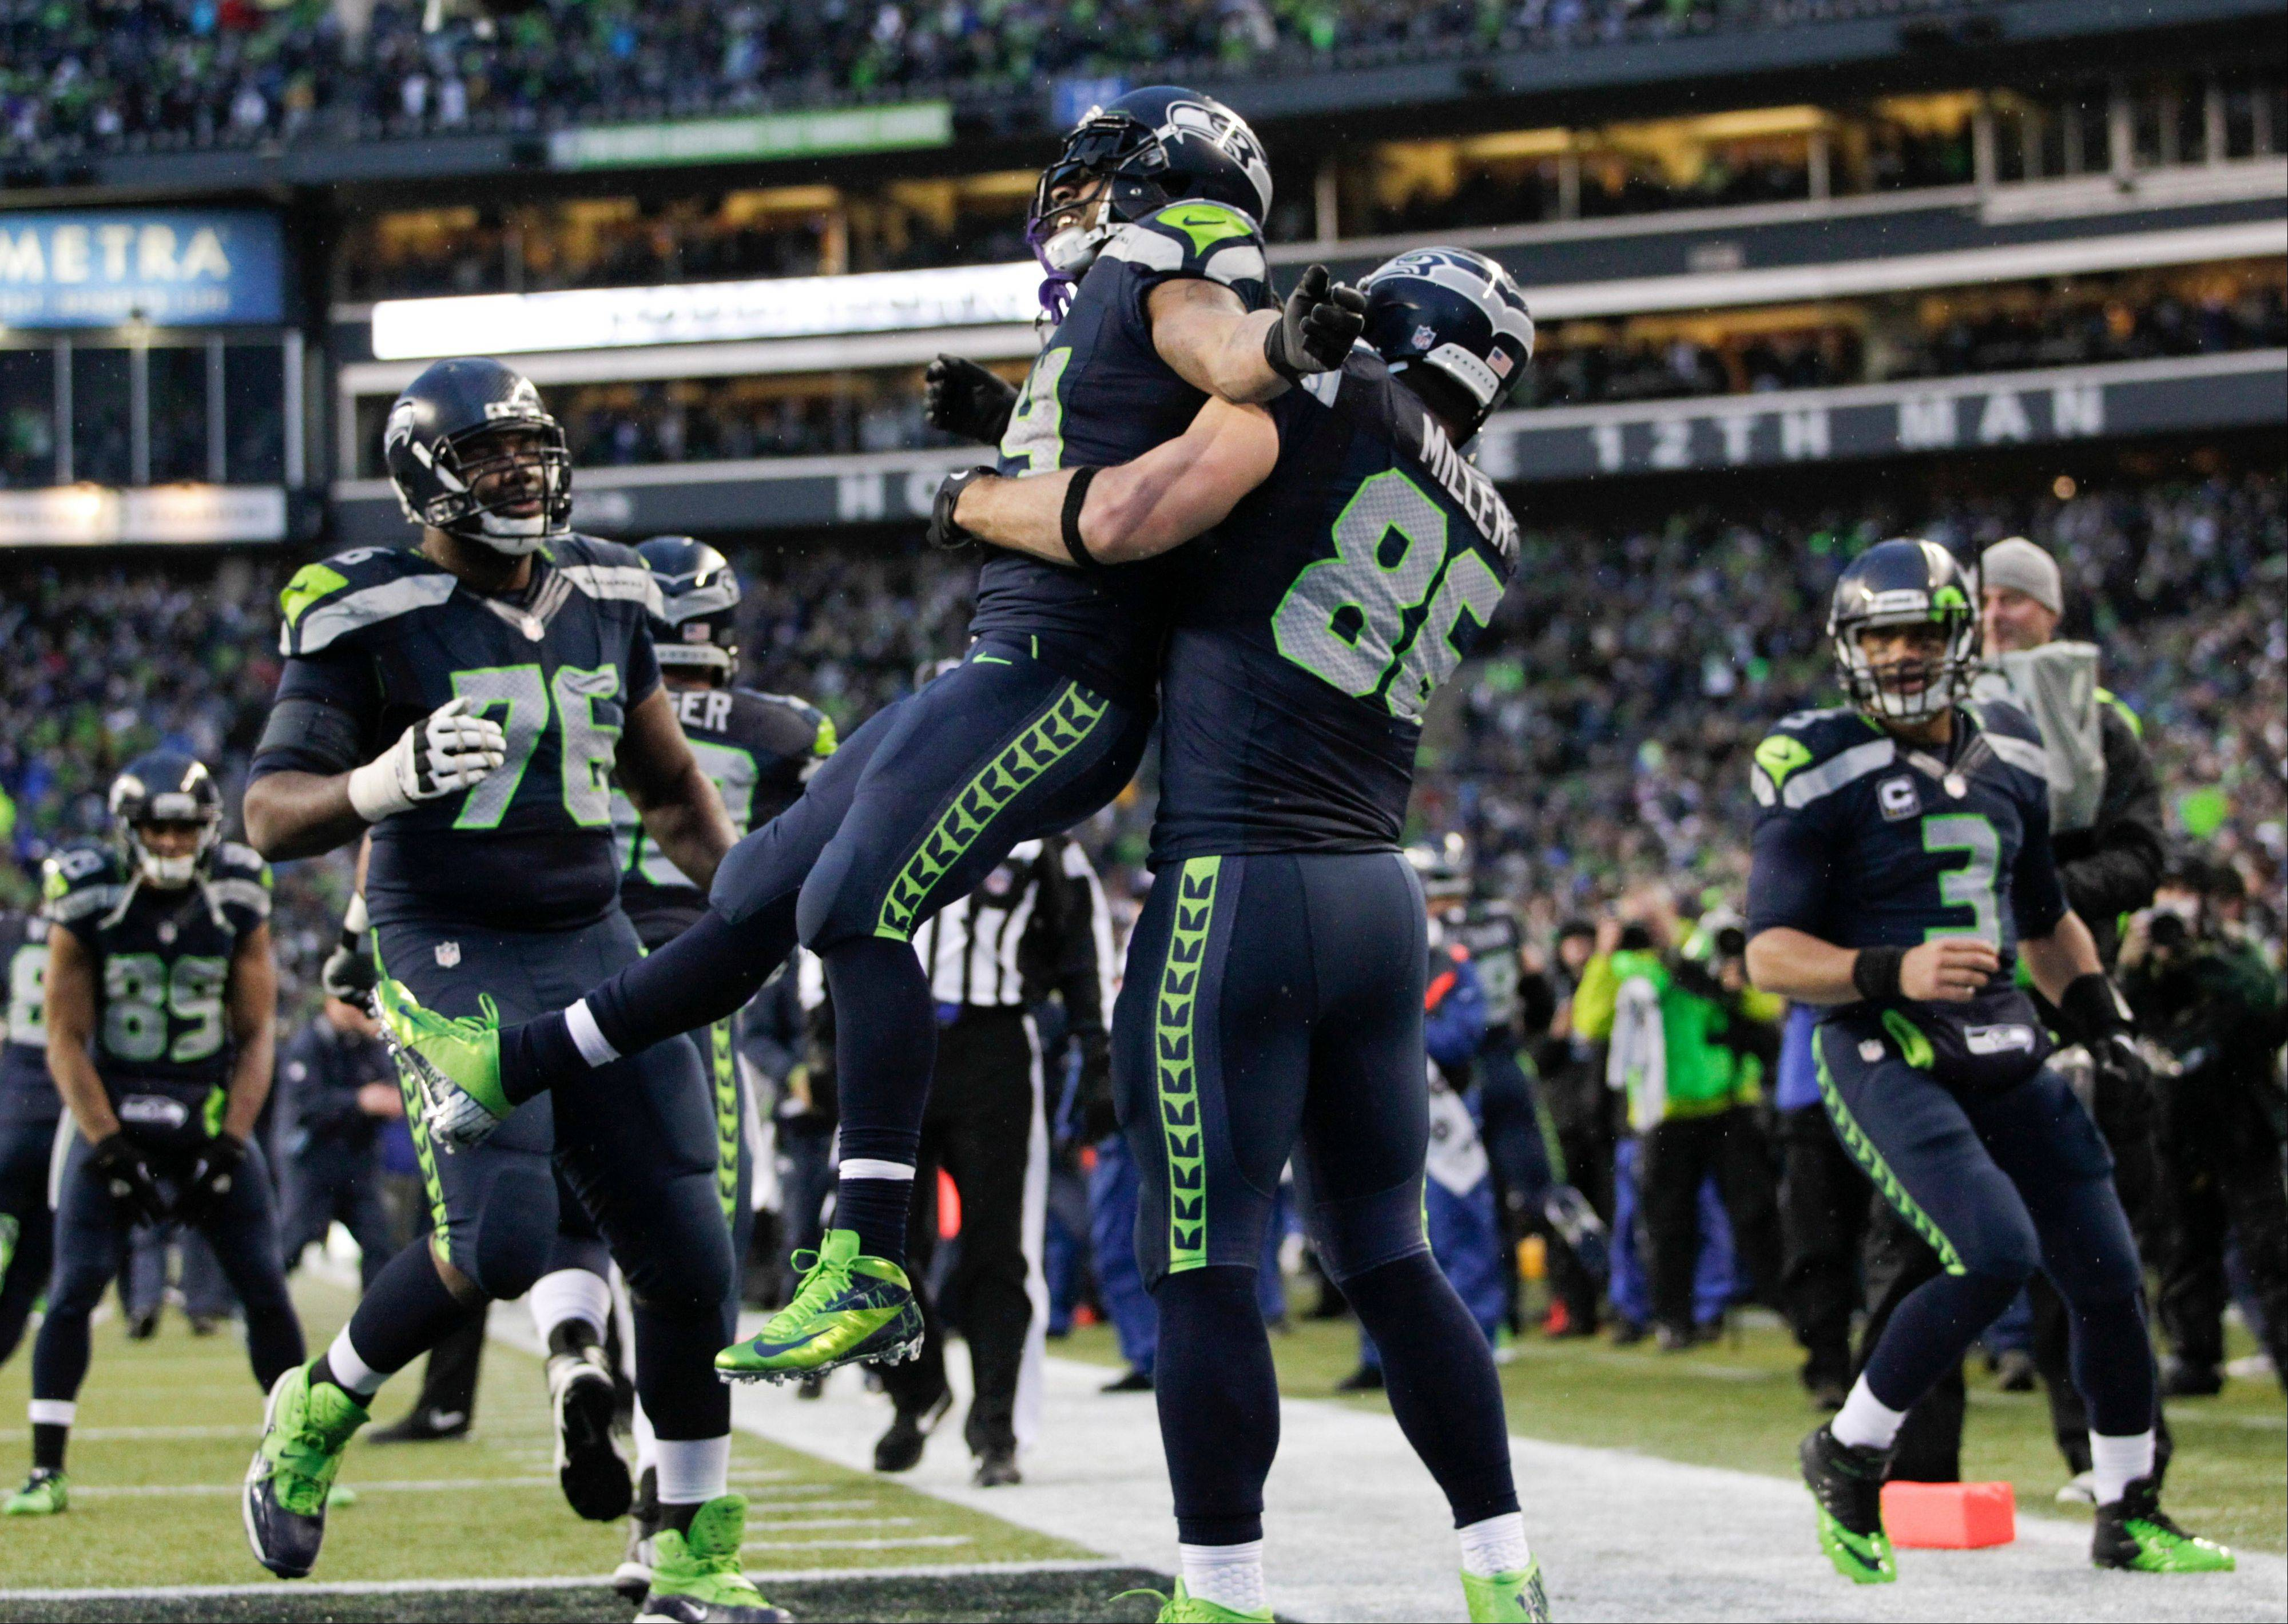 Seattle Seahawks running back Marshawn Lynch (24) celebrates with tight end Zach Miller (86) after running for a 31-yard touchdown against the New Orleans Saints during the fourth quarter of an NFC divisional playoff NFL football game in Seattle, Saturday, Jan. 11, 2014.